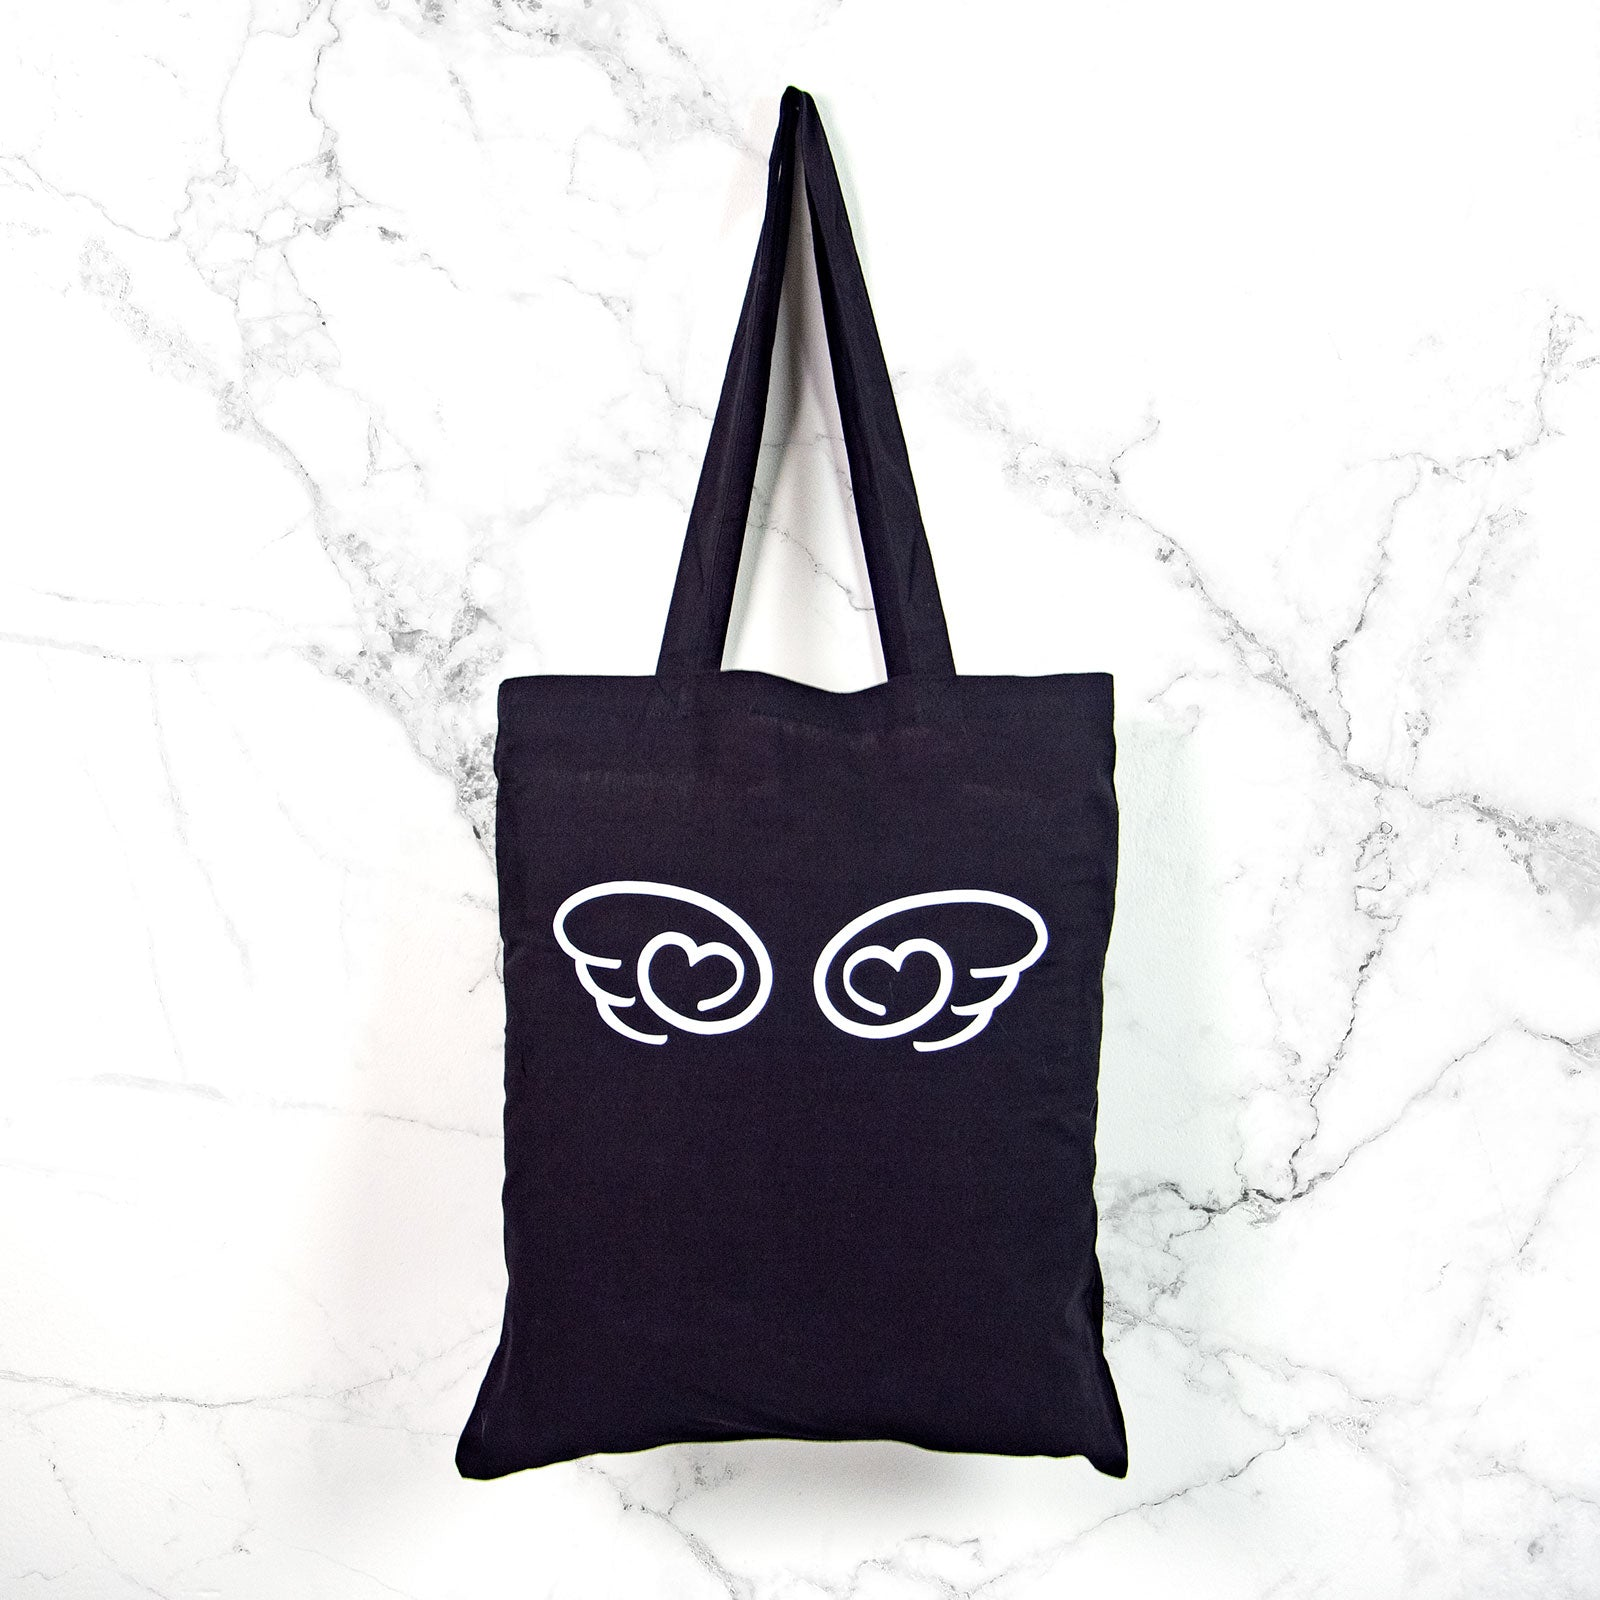 Dark fallen angel wing tote bag for pastel goth or soft grunge